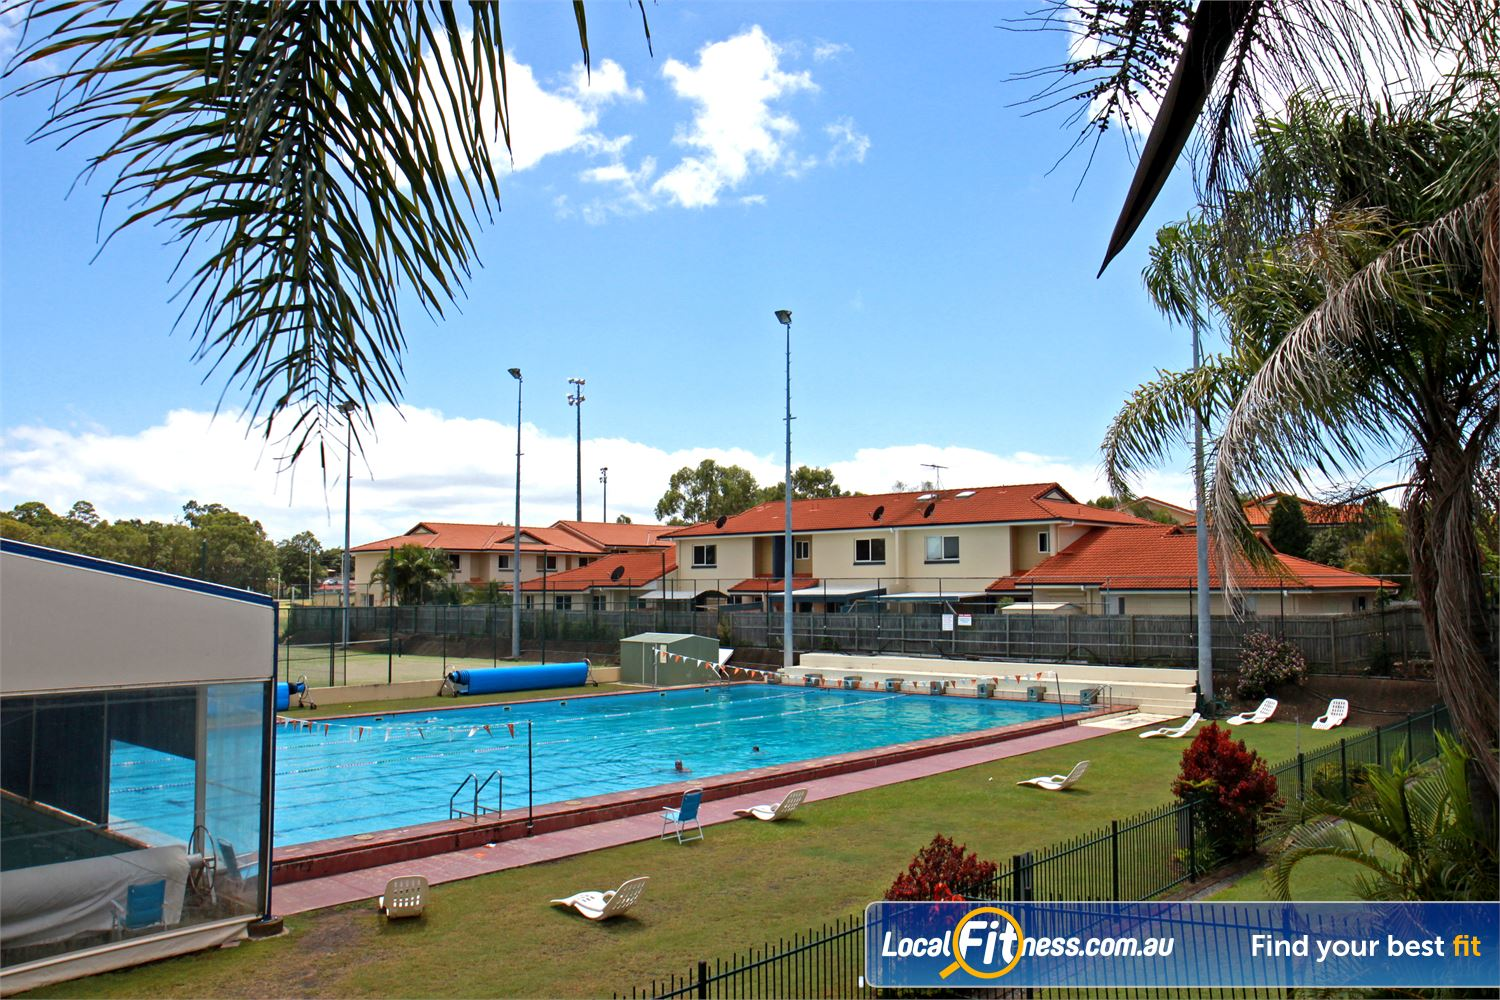 Goodlife Health Clubs Alexandra Hills The beautiful outdoor swimming pool area at Goodlife Alexandra Hills.